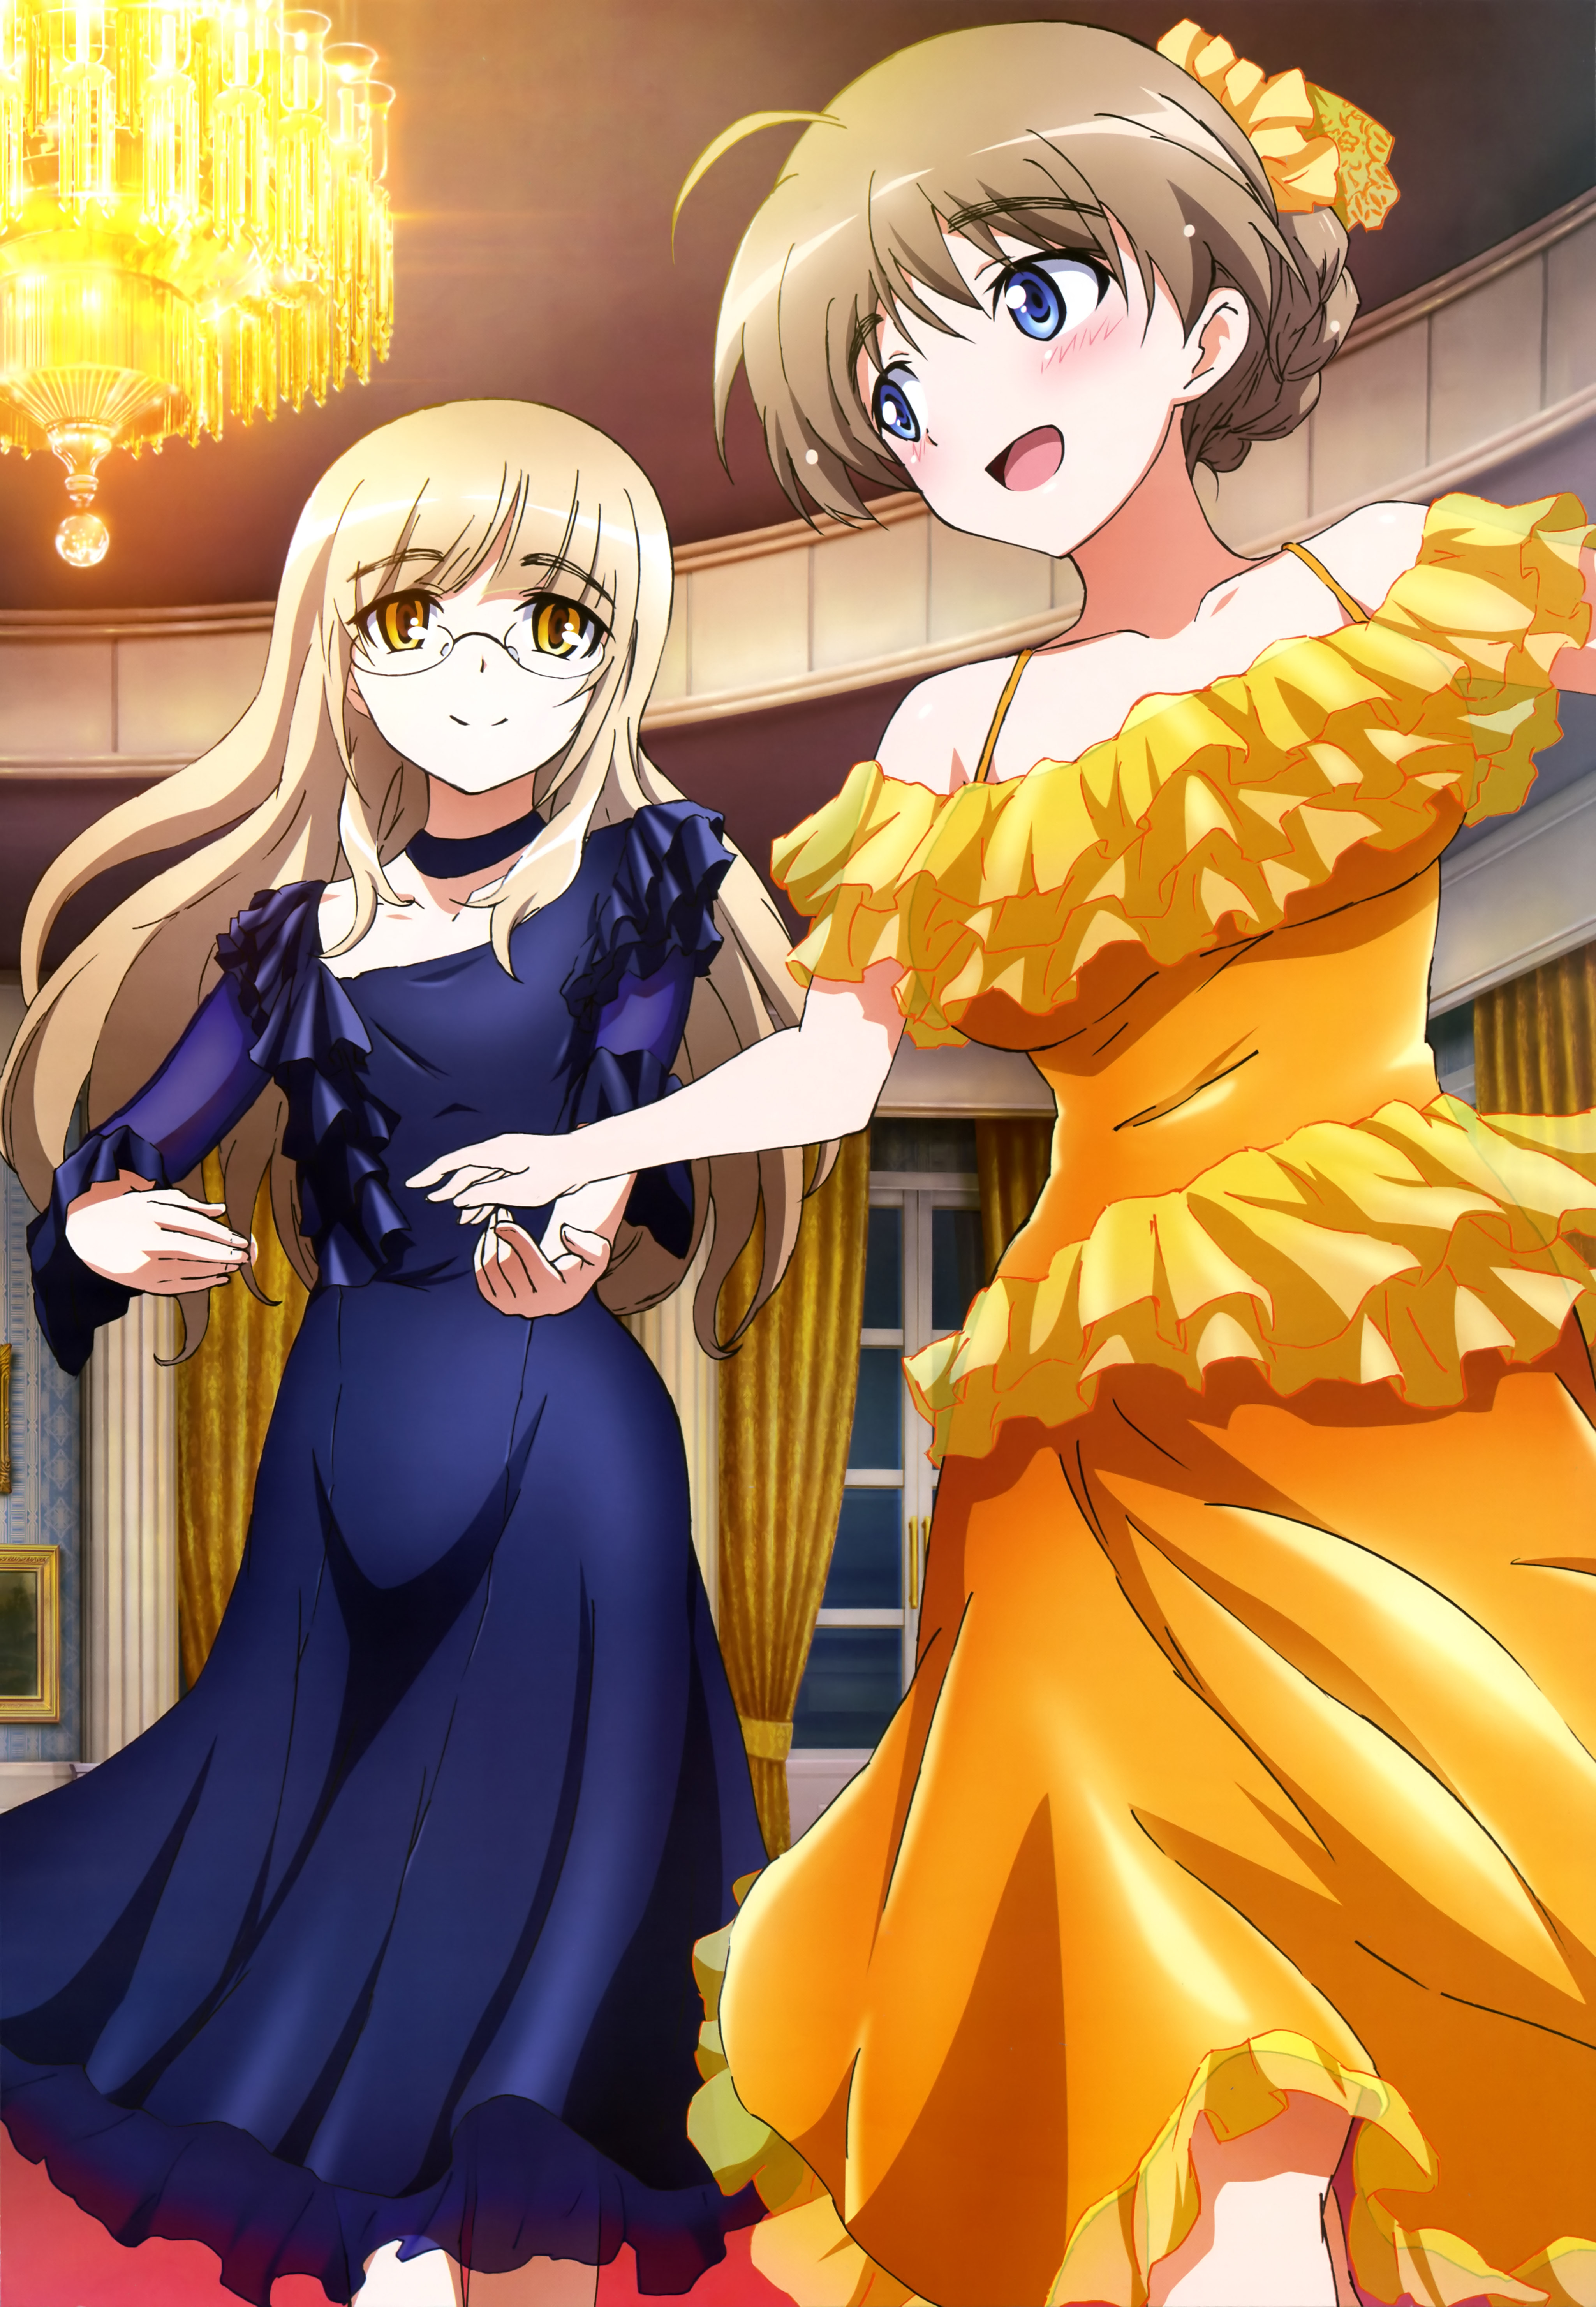 NyanType Magazine May 2015 anime posters strike witches lynette bishop perrine h clostermann poster